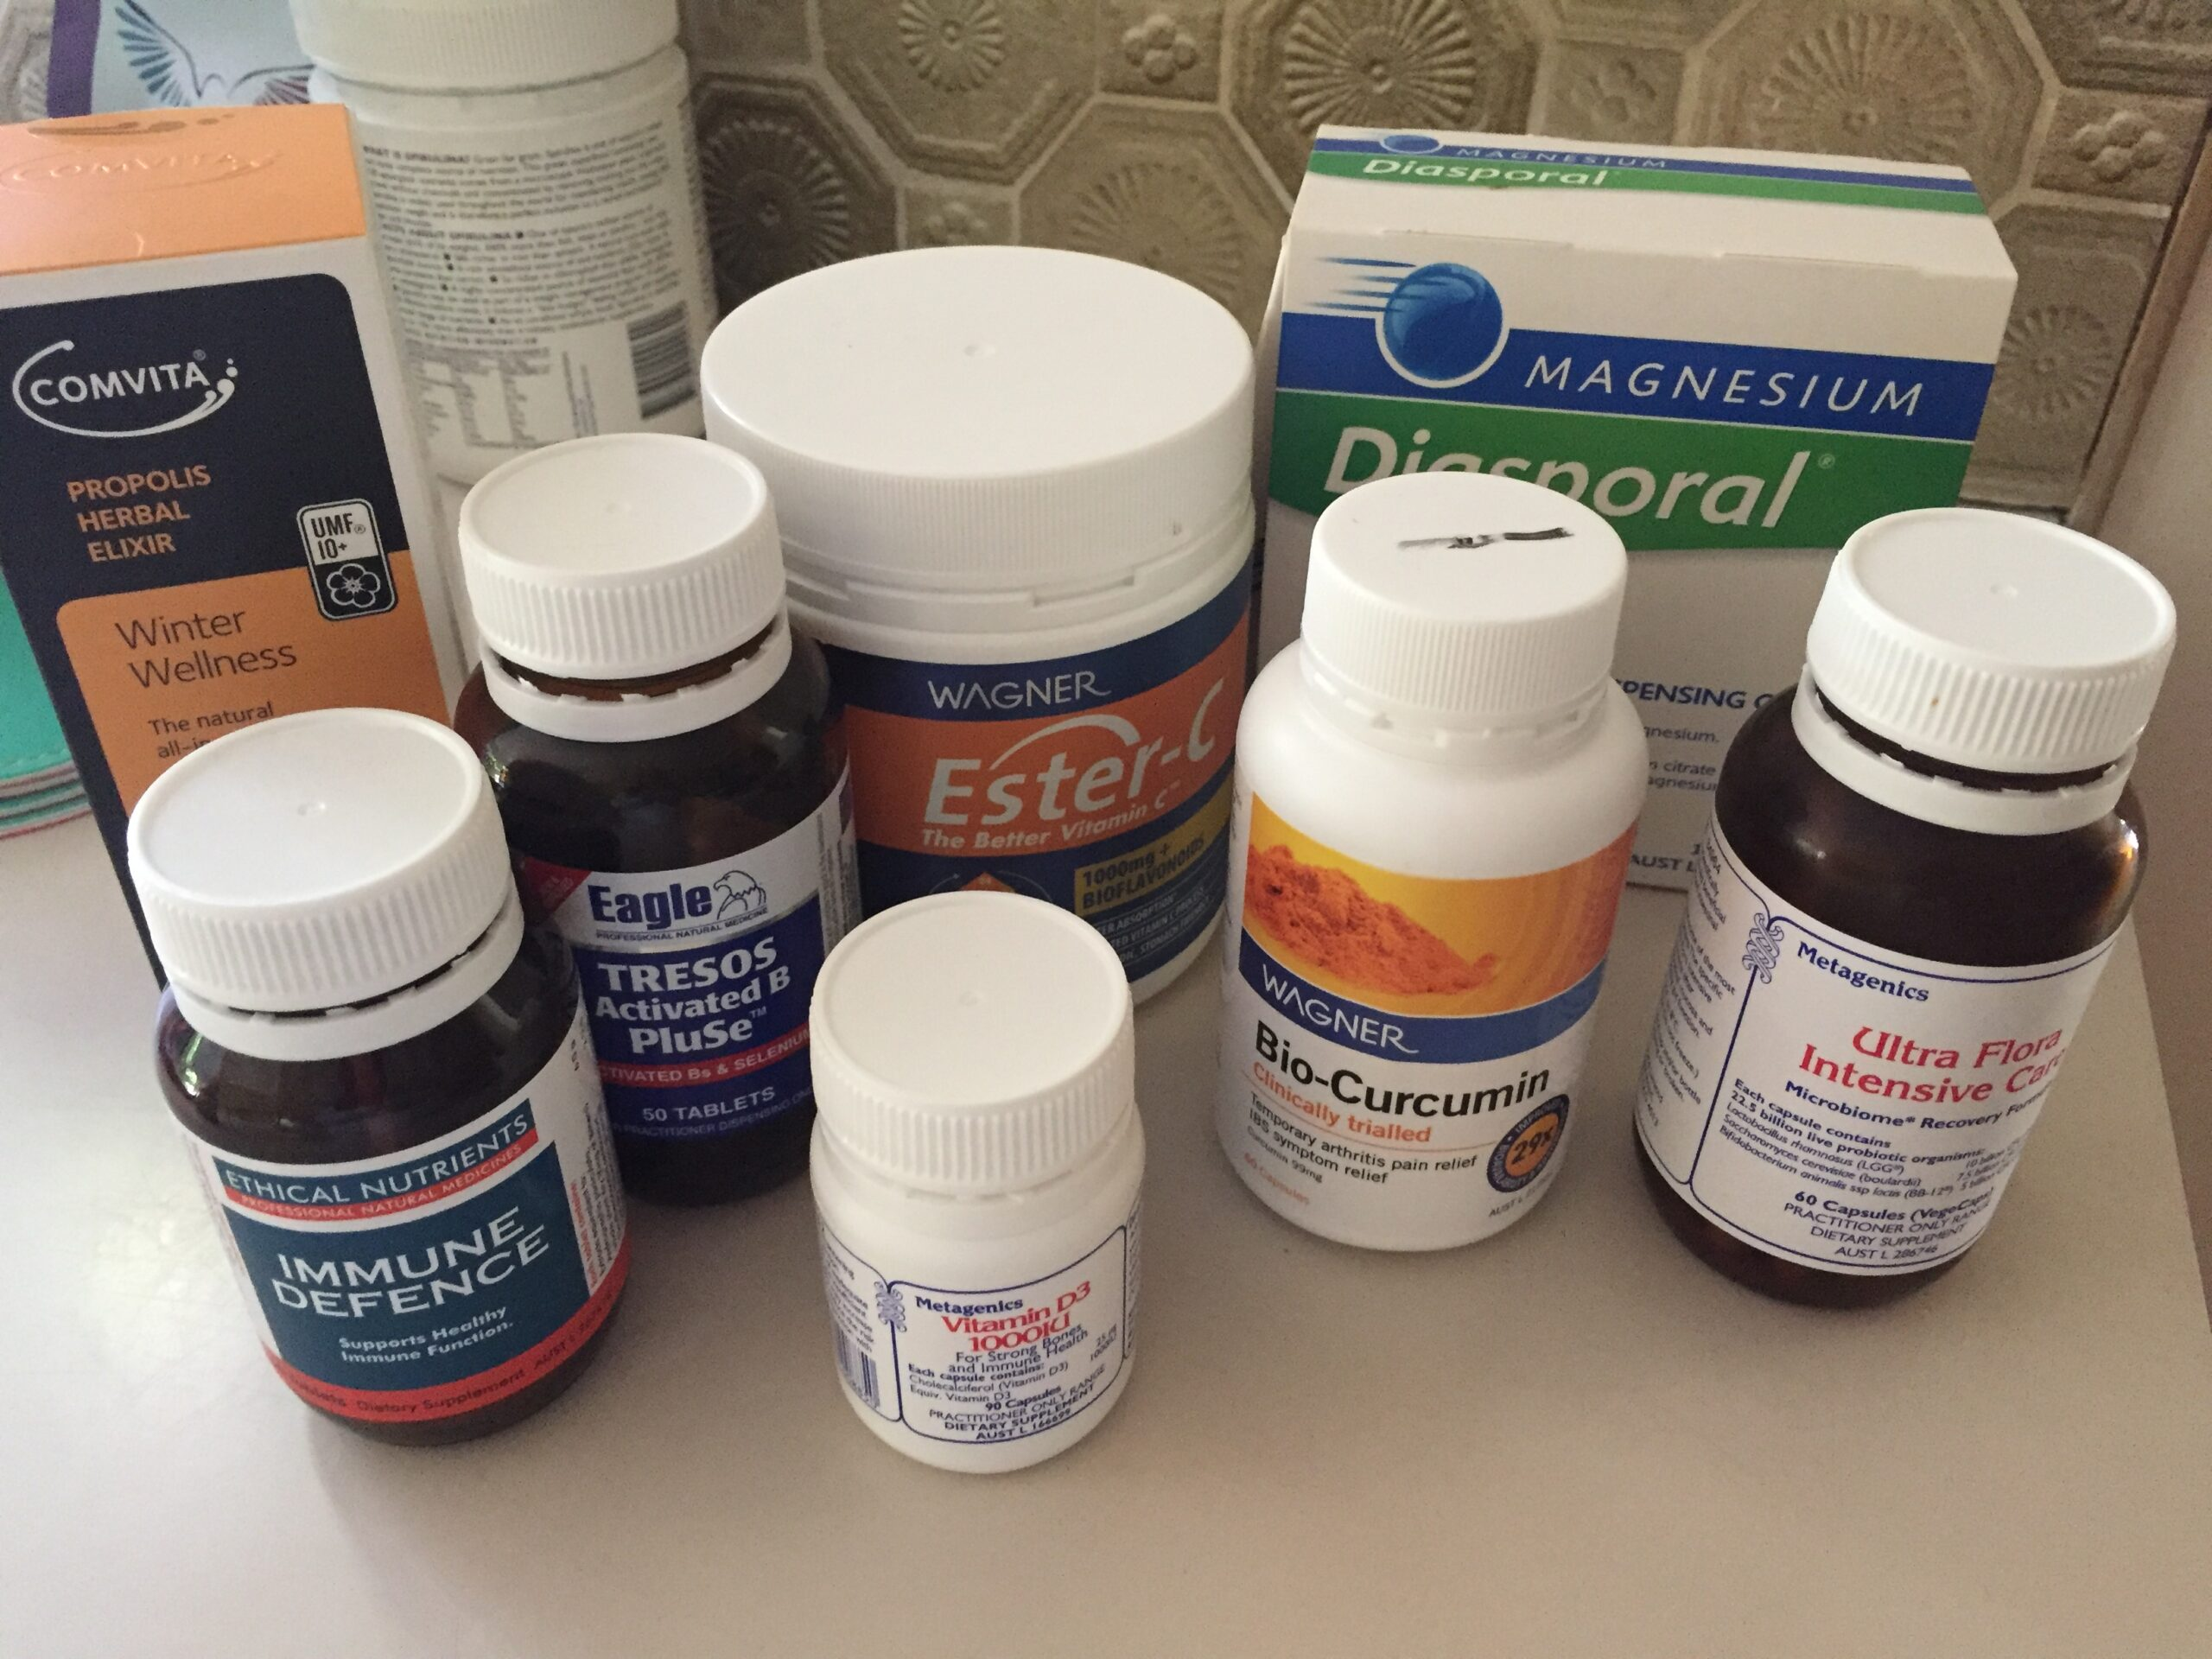 I woke up with a sore throat… Want to see what I am doing about it?